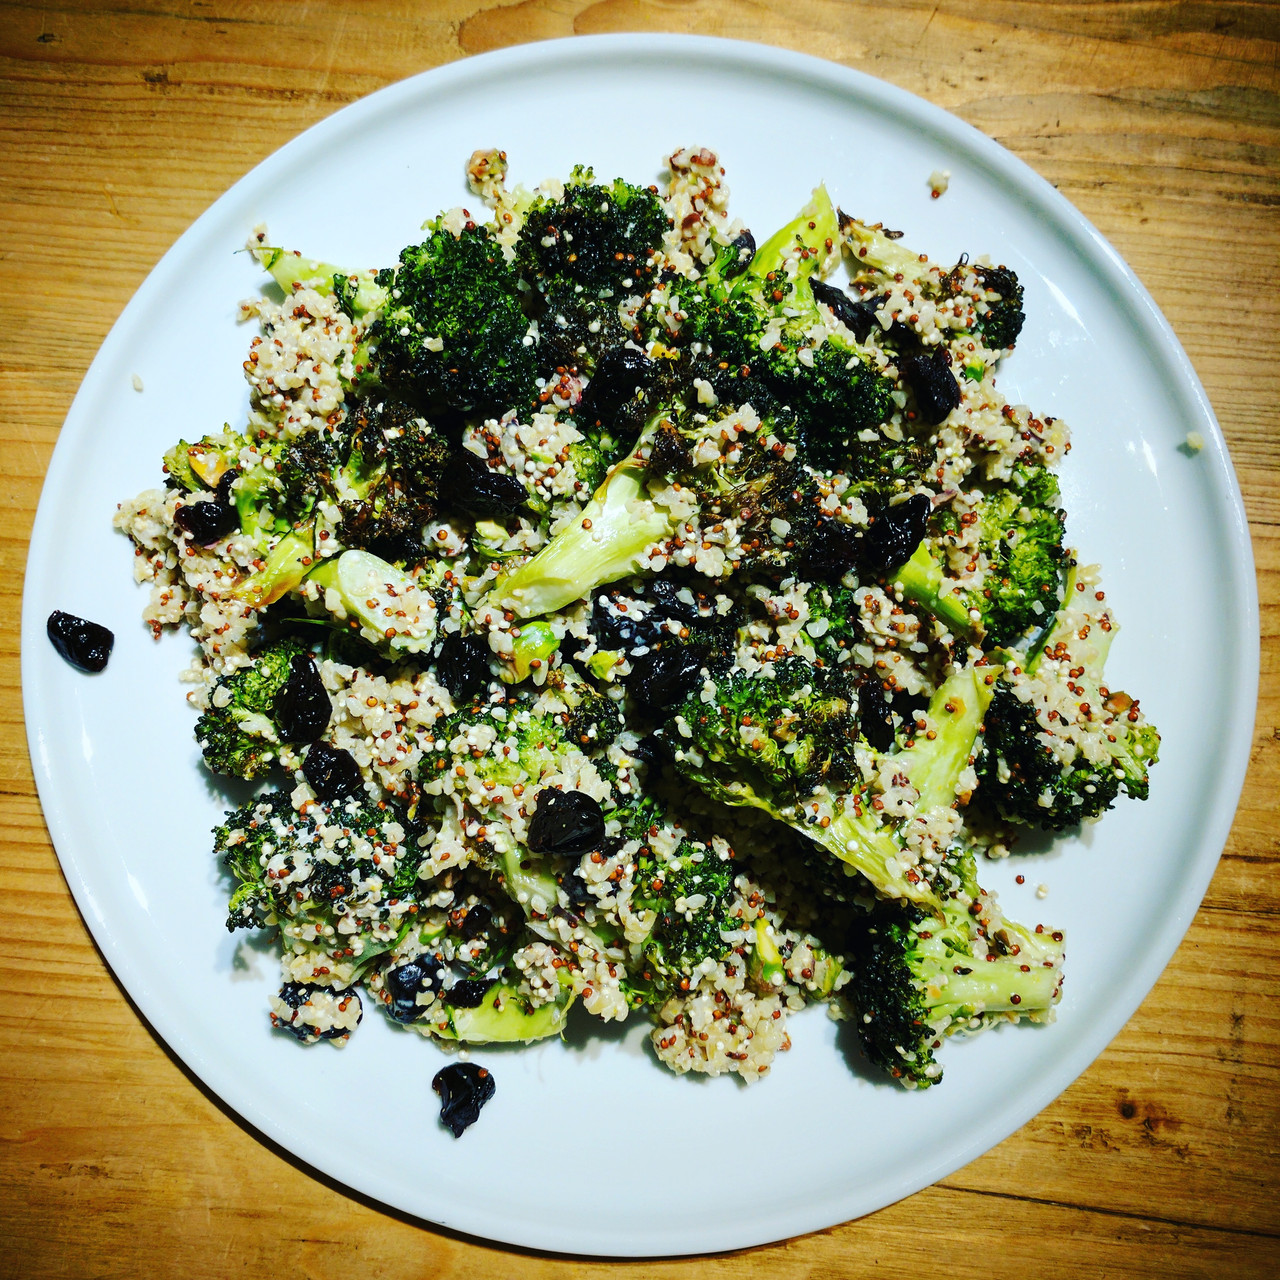 Roasted Broccoli with Bulgar, Dried Cherries and Pistachios